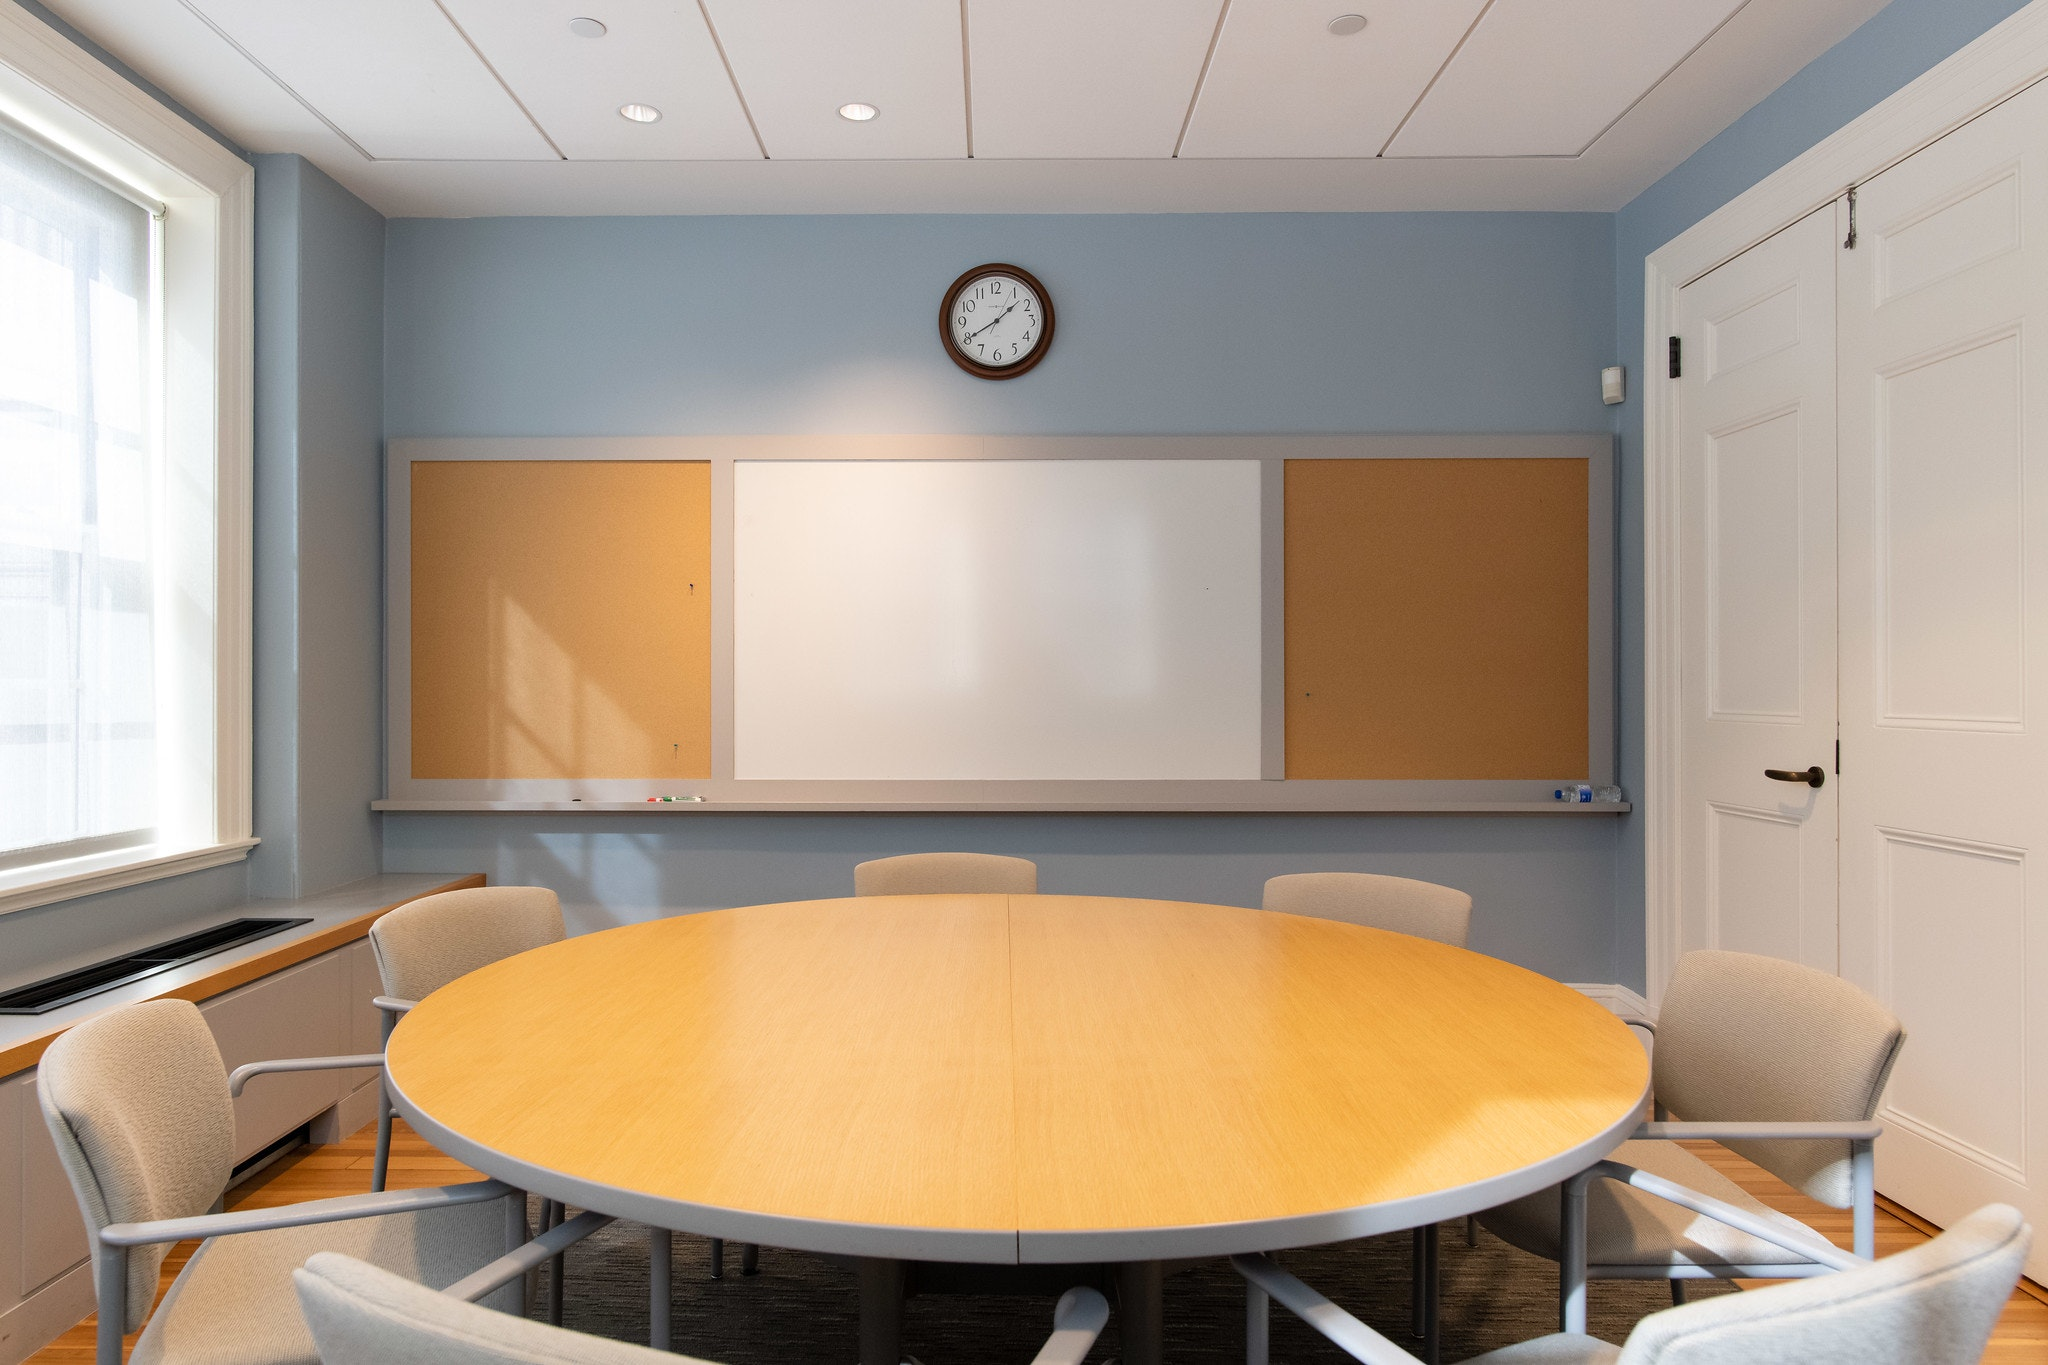 Circular conference room table, seating for 7 people. To the right is an entrance of two white double doors, and to the left are some windows letting in natural light. In the back center of the room is a whiteboard and a clock mounted directly above it.